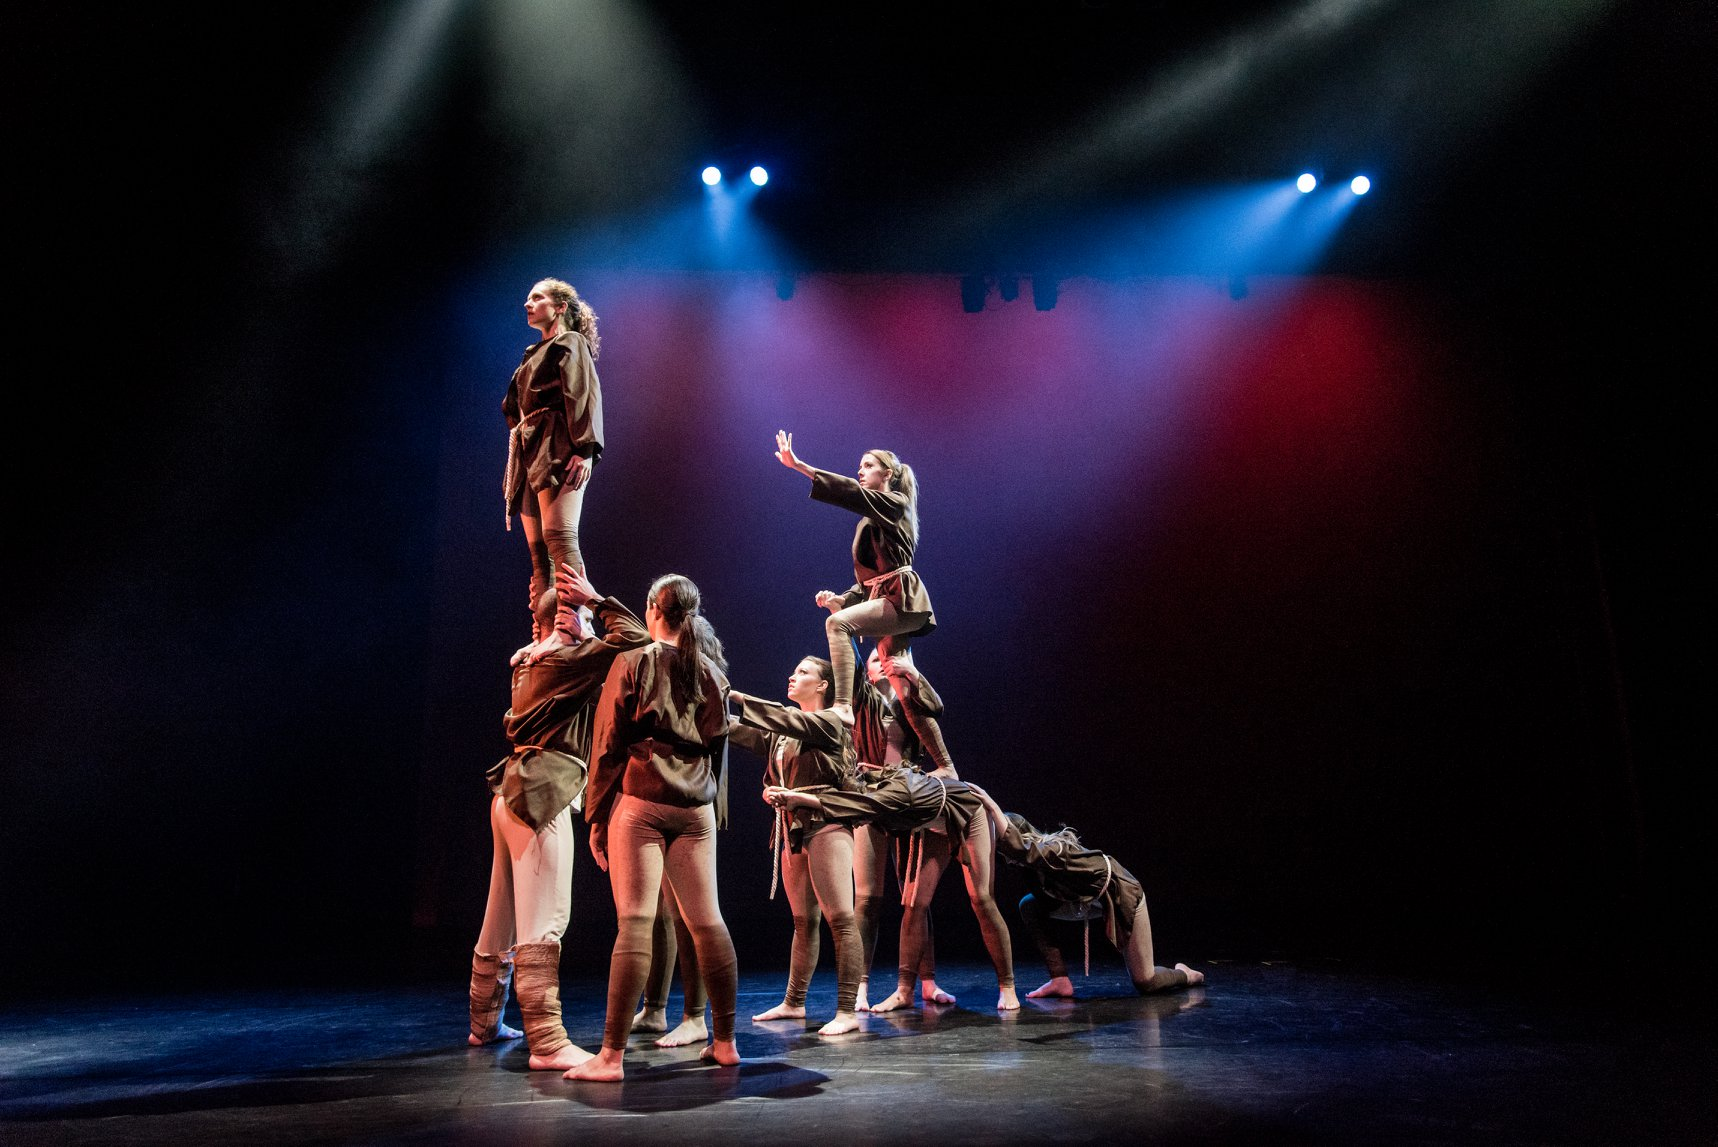 Dancers from the Northwest Florida State College Department of Dance perform a choreographed routine at the Mainstage theater of the Mattie Kelly Arts Center